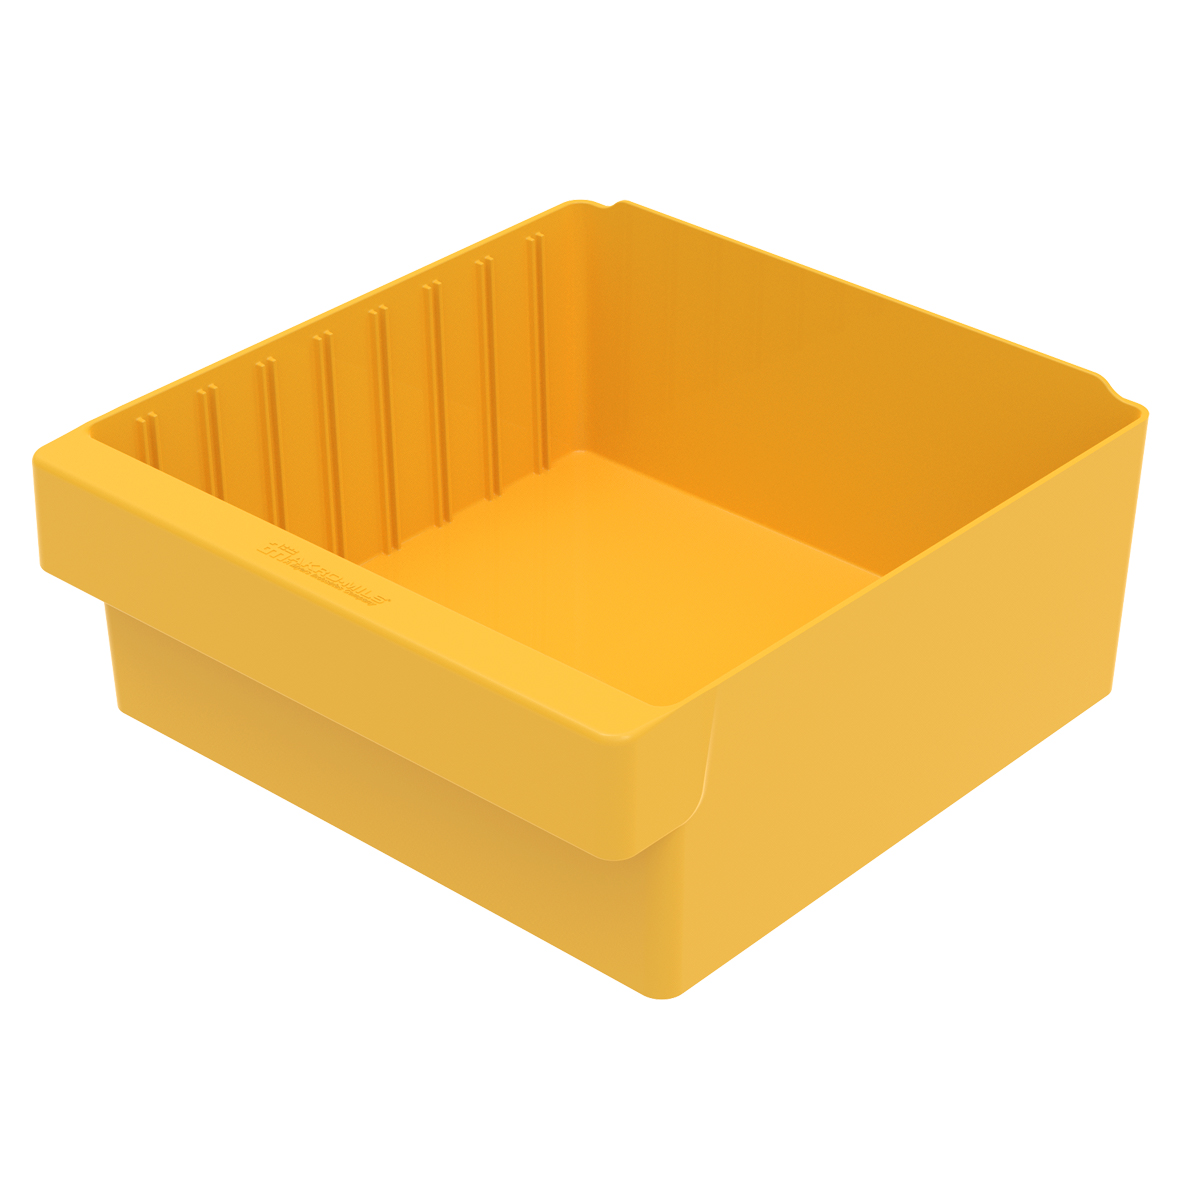 AkroDrawer 11-5/8 x 11-1/8 x 4-5/8, Yellow (31112YEL).  This item sold in carton quantities of 4.